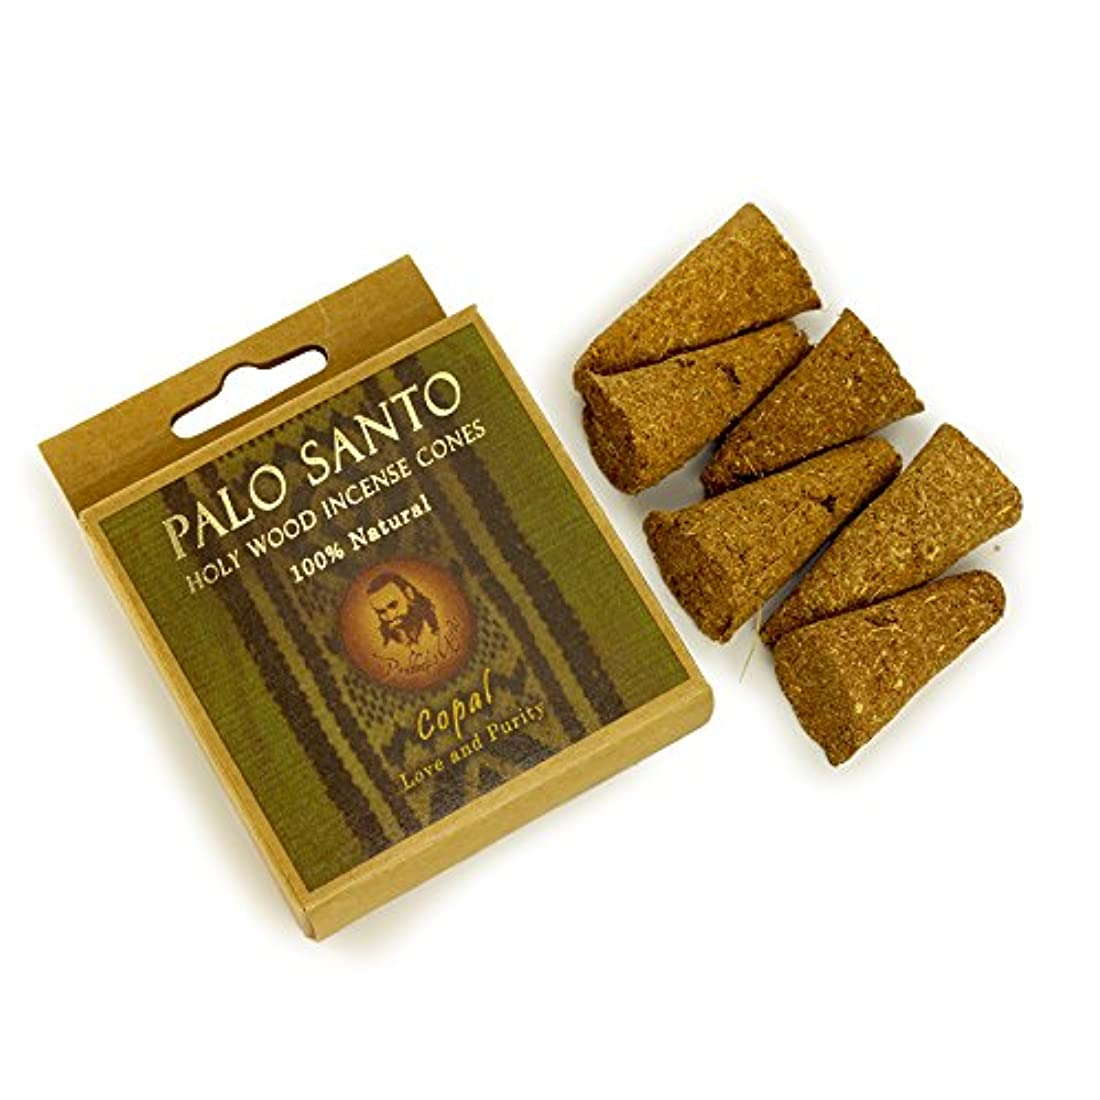 フットボール普遍的なこどもセンターPalo Santo and Copal – Love & Purity – 6 Incense Cones